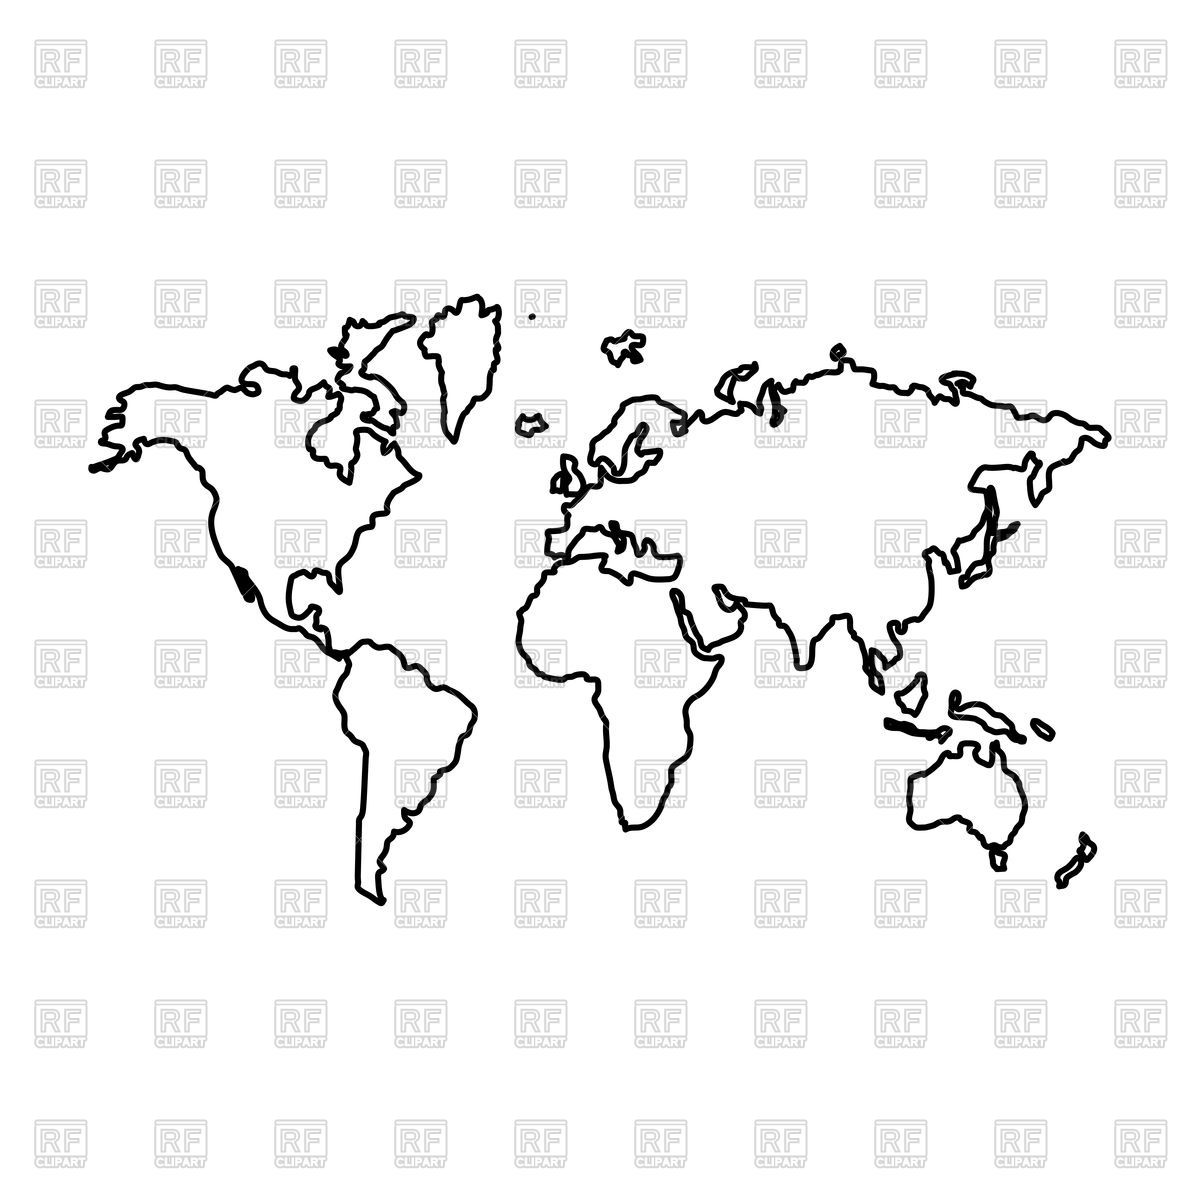 Download Royalty Free World Map Outline Vector Image 173110 From Rfclipart Illustrations Vector Artwork Of World Map Outline World Map Tattoos World Outline